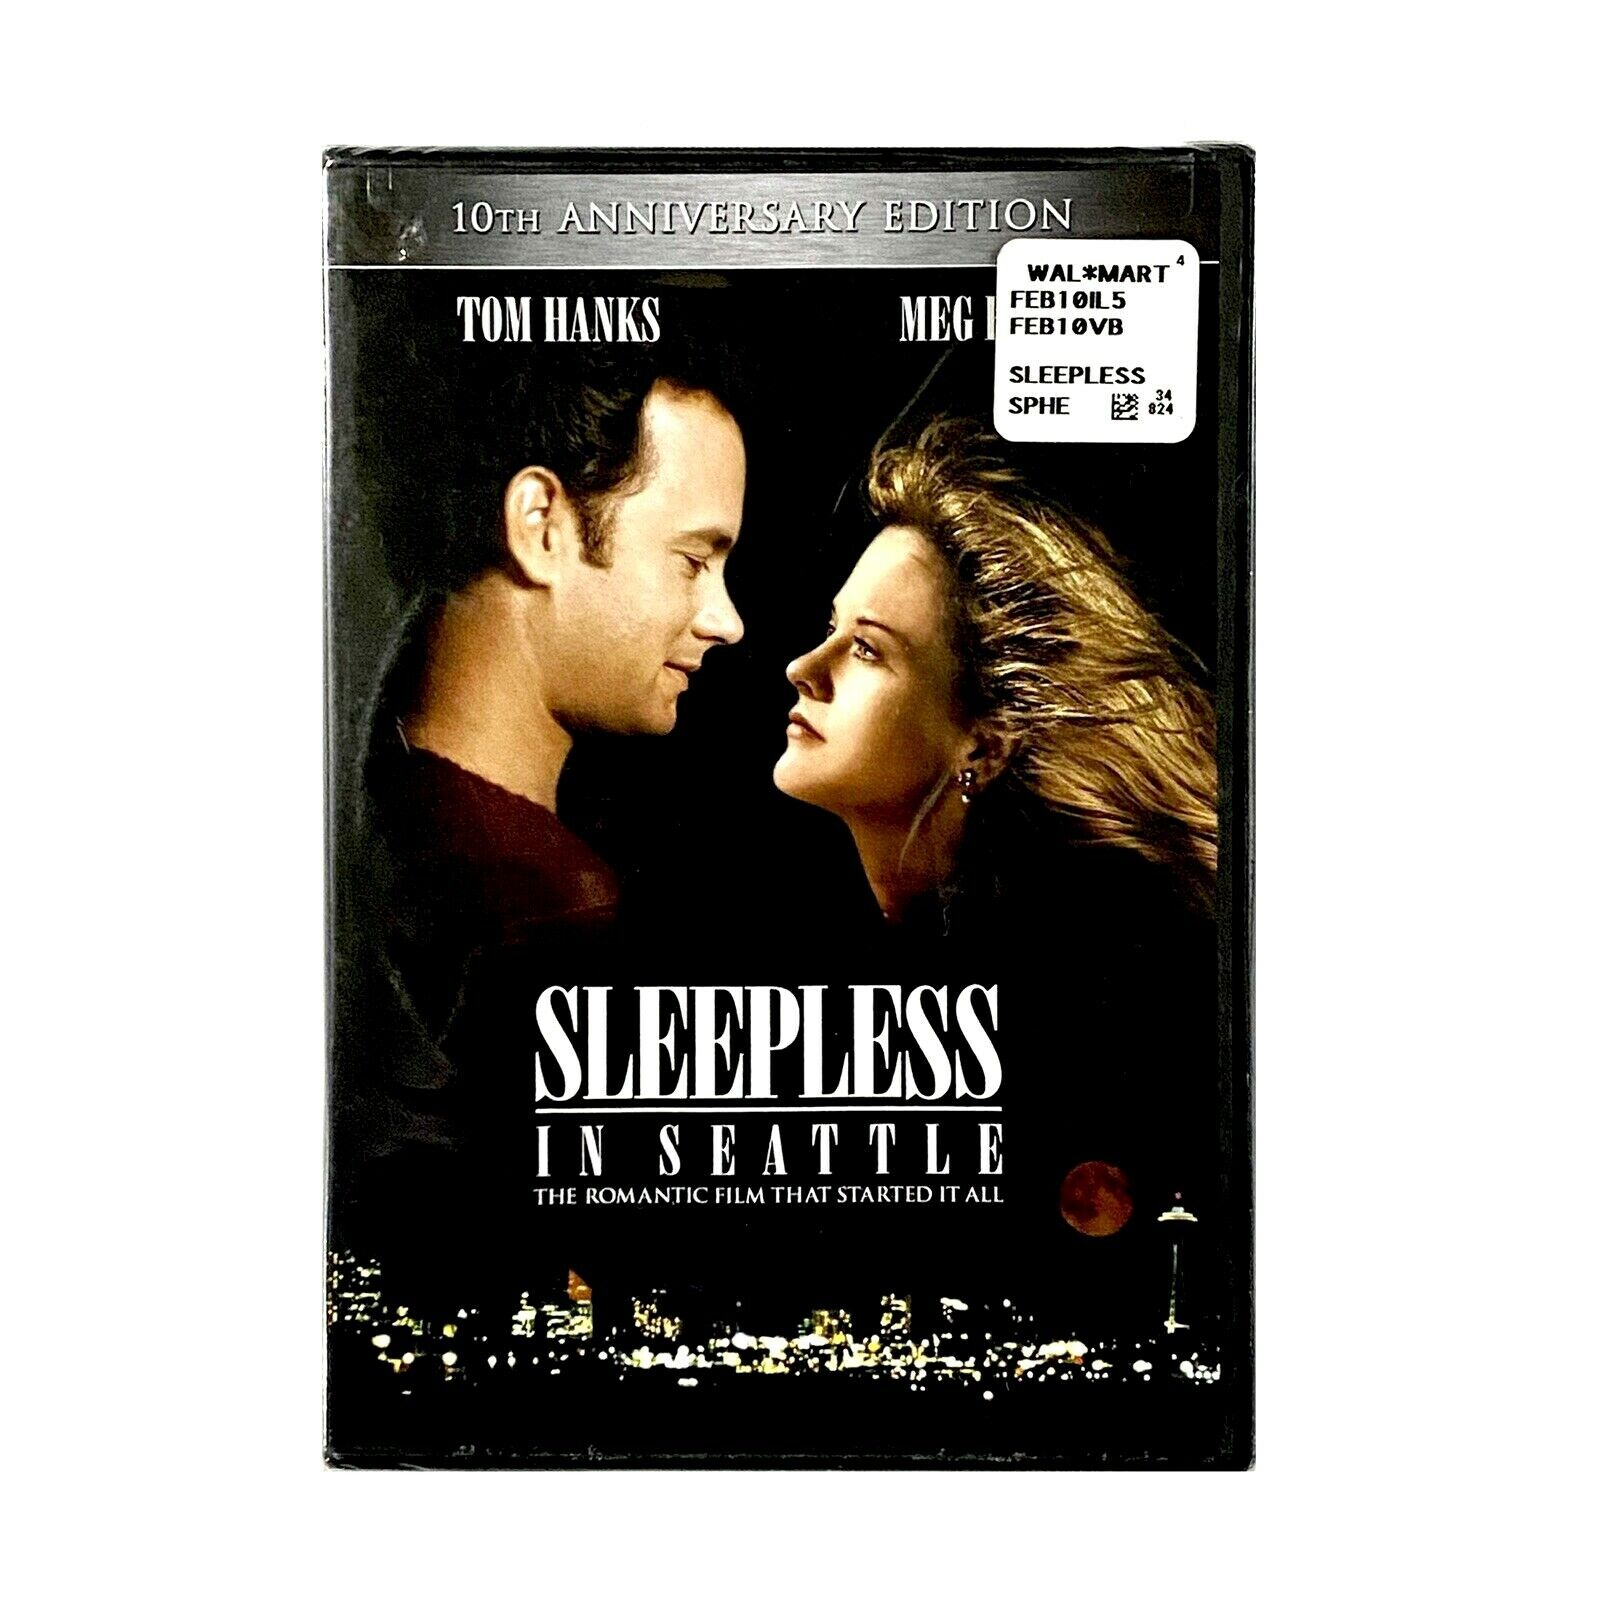 Sleepless In Seattle 10th Anniversary Edition DVD, 2003  - $7.50